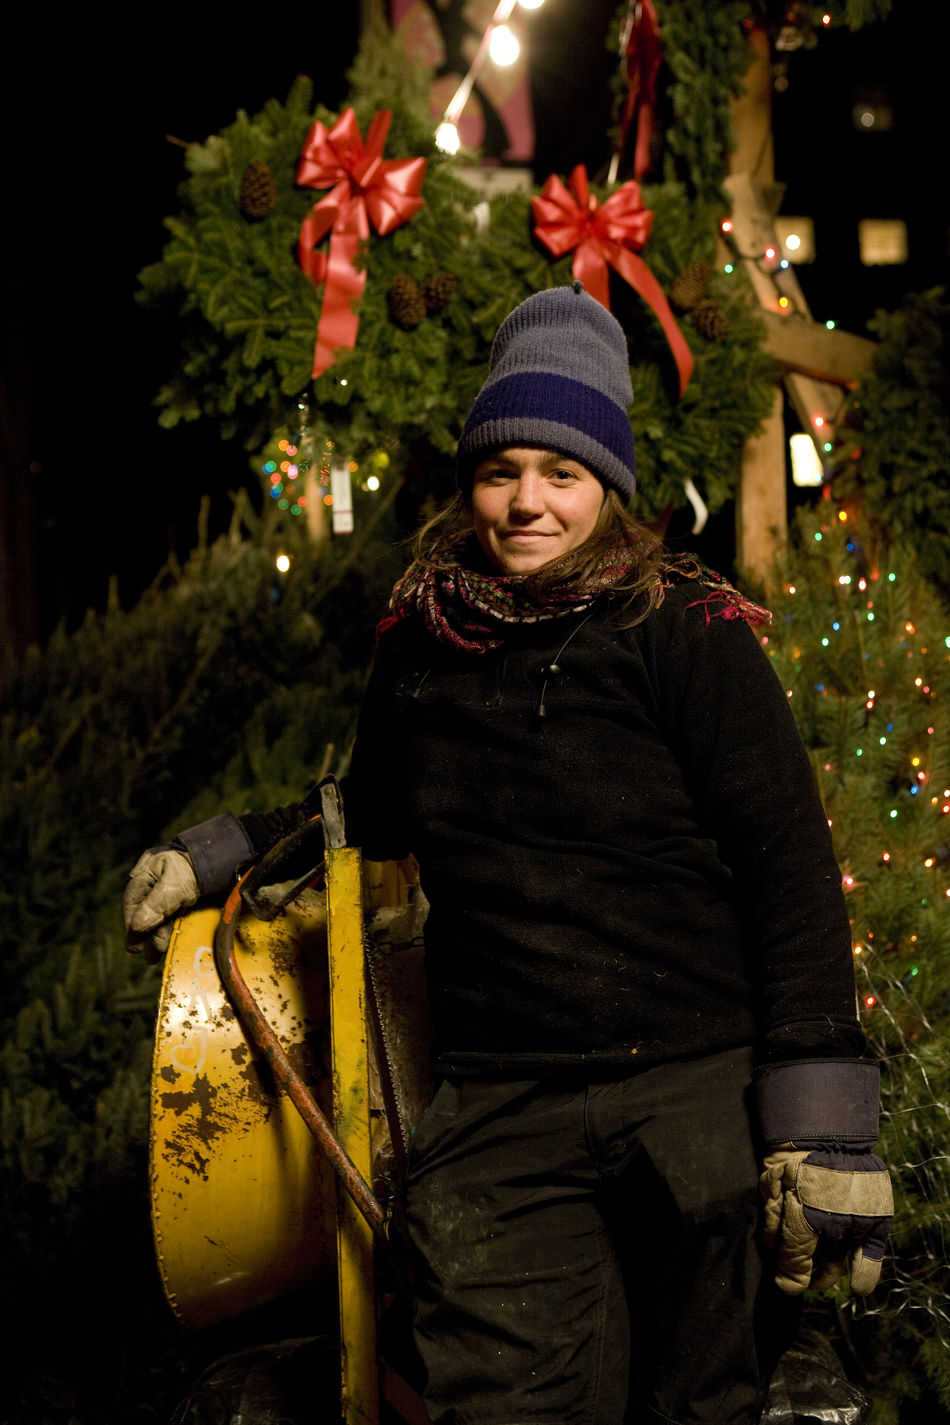 Christmas Season Christmas Tree Christmas Tree Girl, Christmas Tree Seller Red, Green And Ye Winter Night Manhattan Ny The Portraitist - 2016 EyeEm Awards